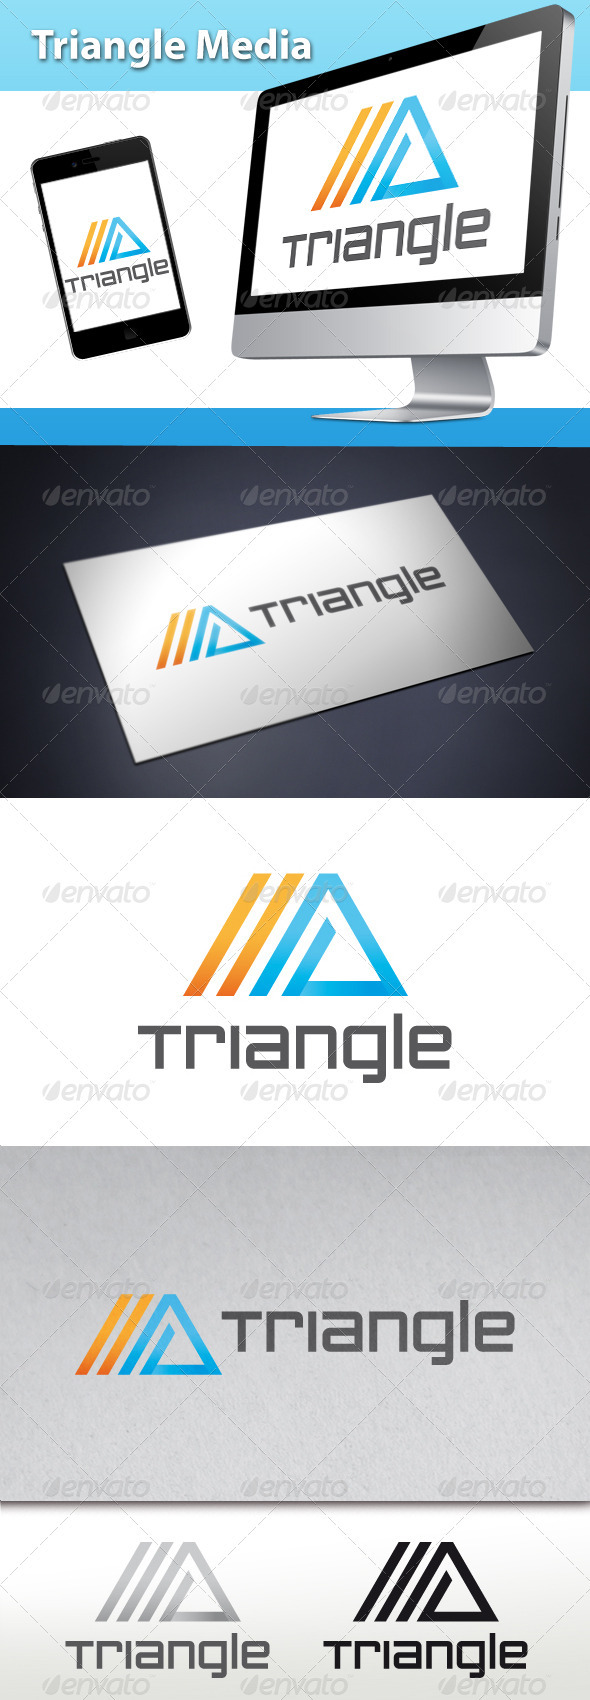 GraphicRiver Triangle Media Logo 3504789